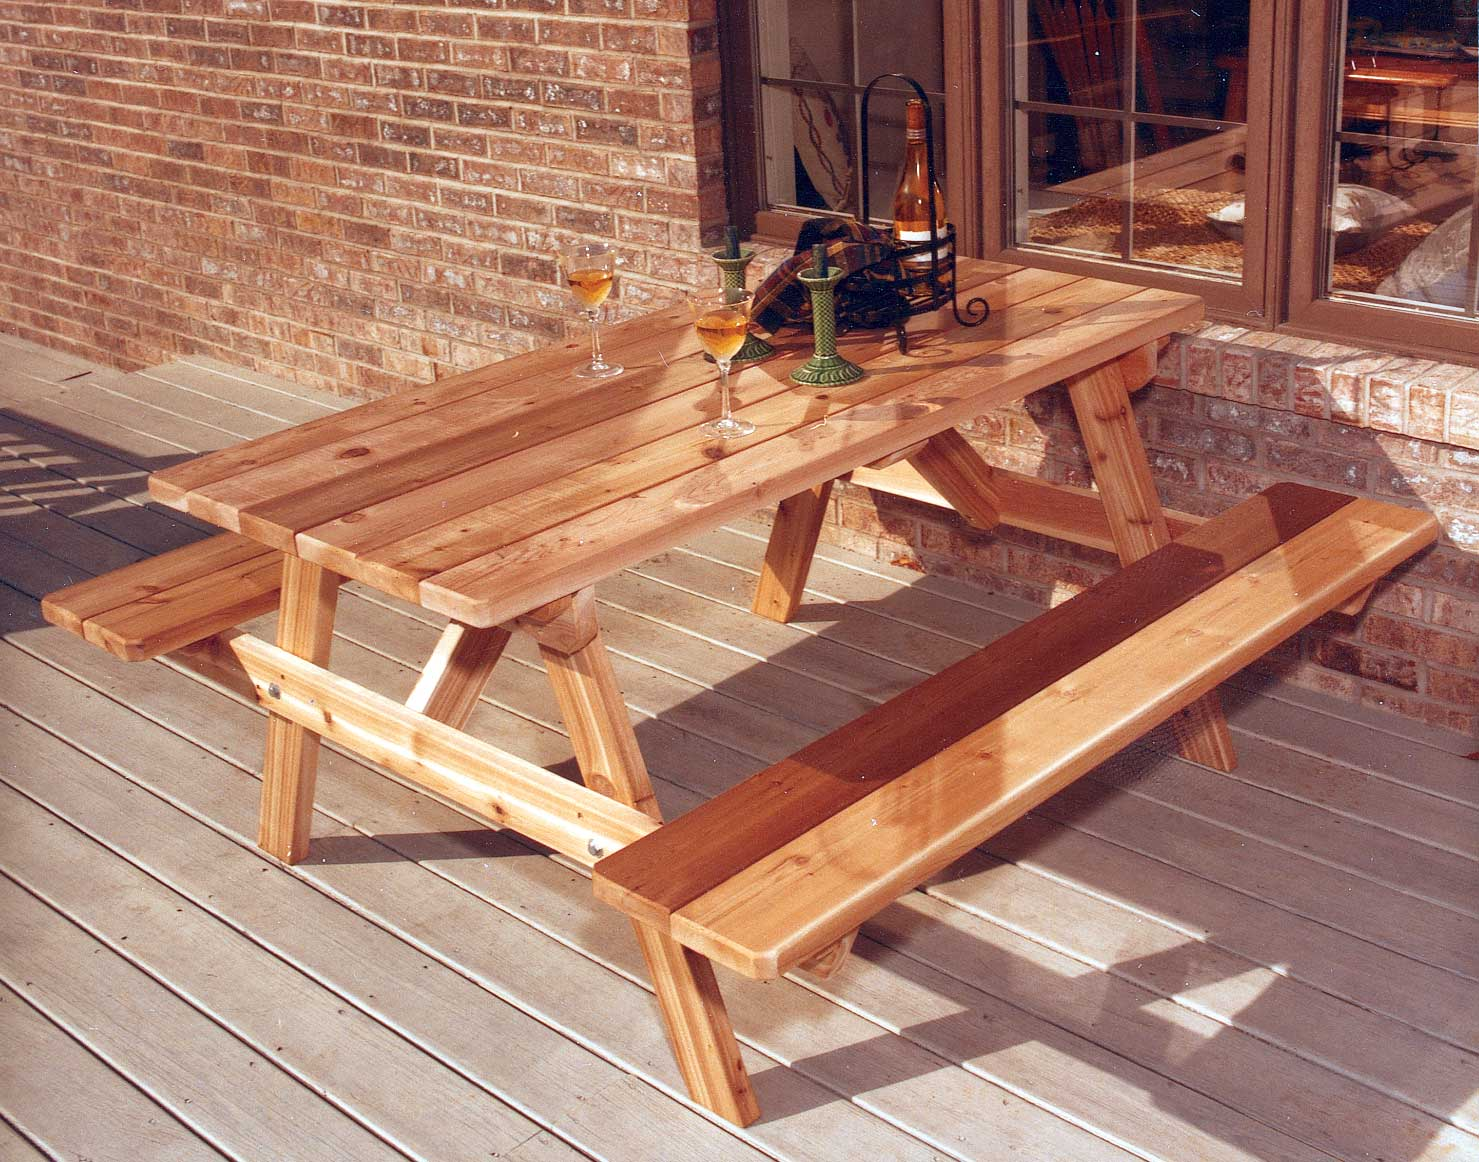 Western red cedar table top western red cedar live edge table top - Western Red Cedar Table Top Western Red Cedar Live Edge Table Top 20